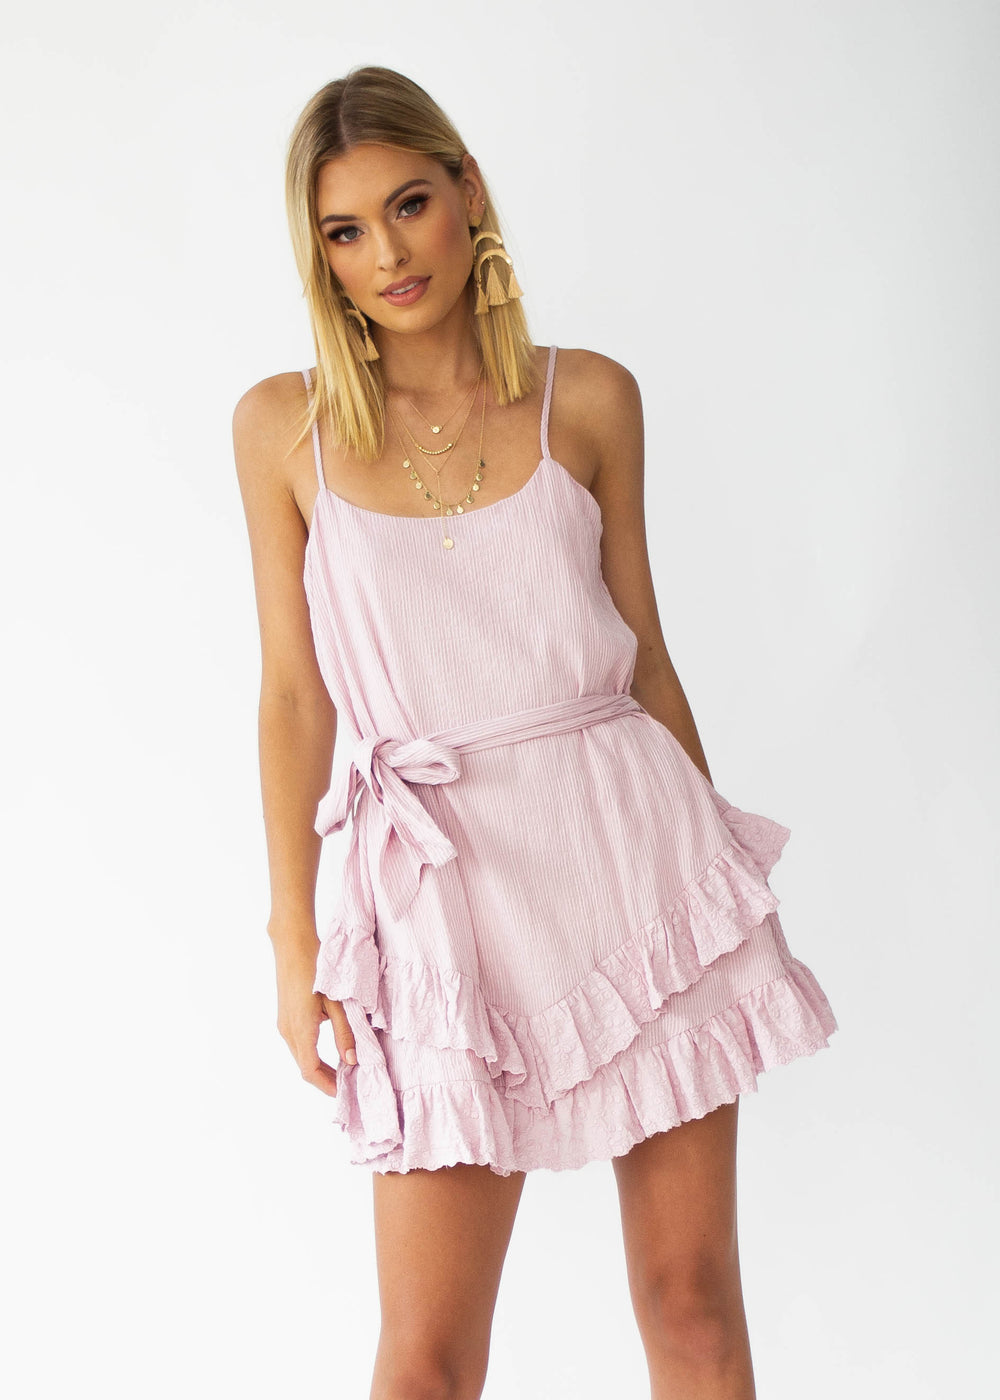 All The Stars Swing Dress - Blush